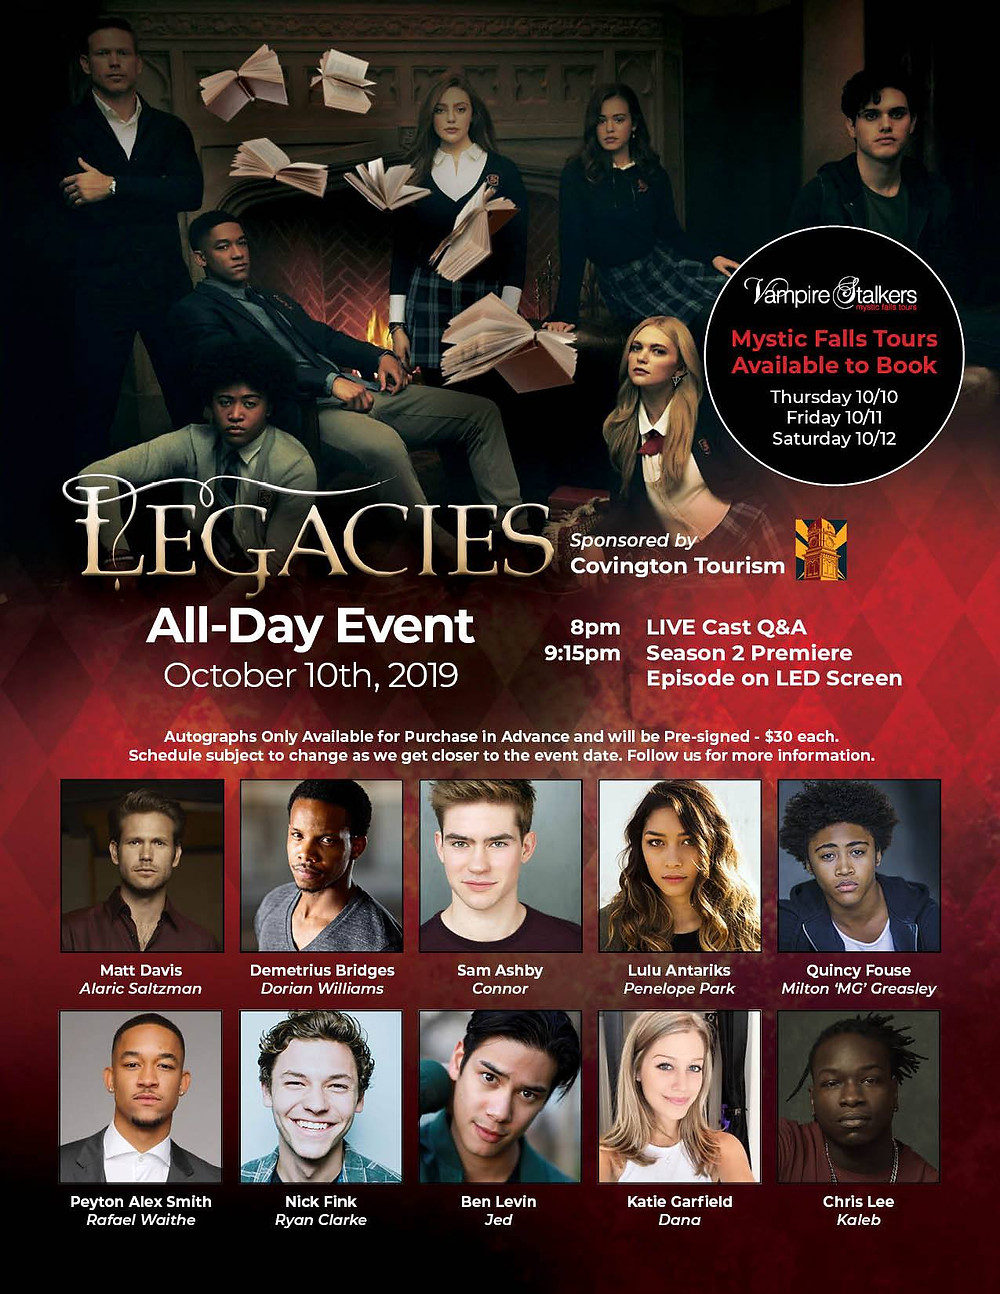 Legacies flyer and autograph link